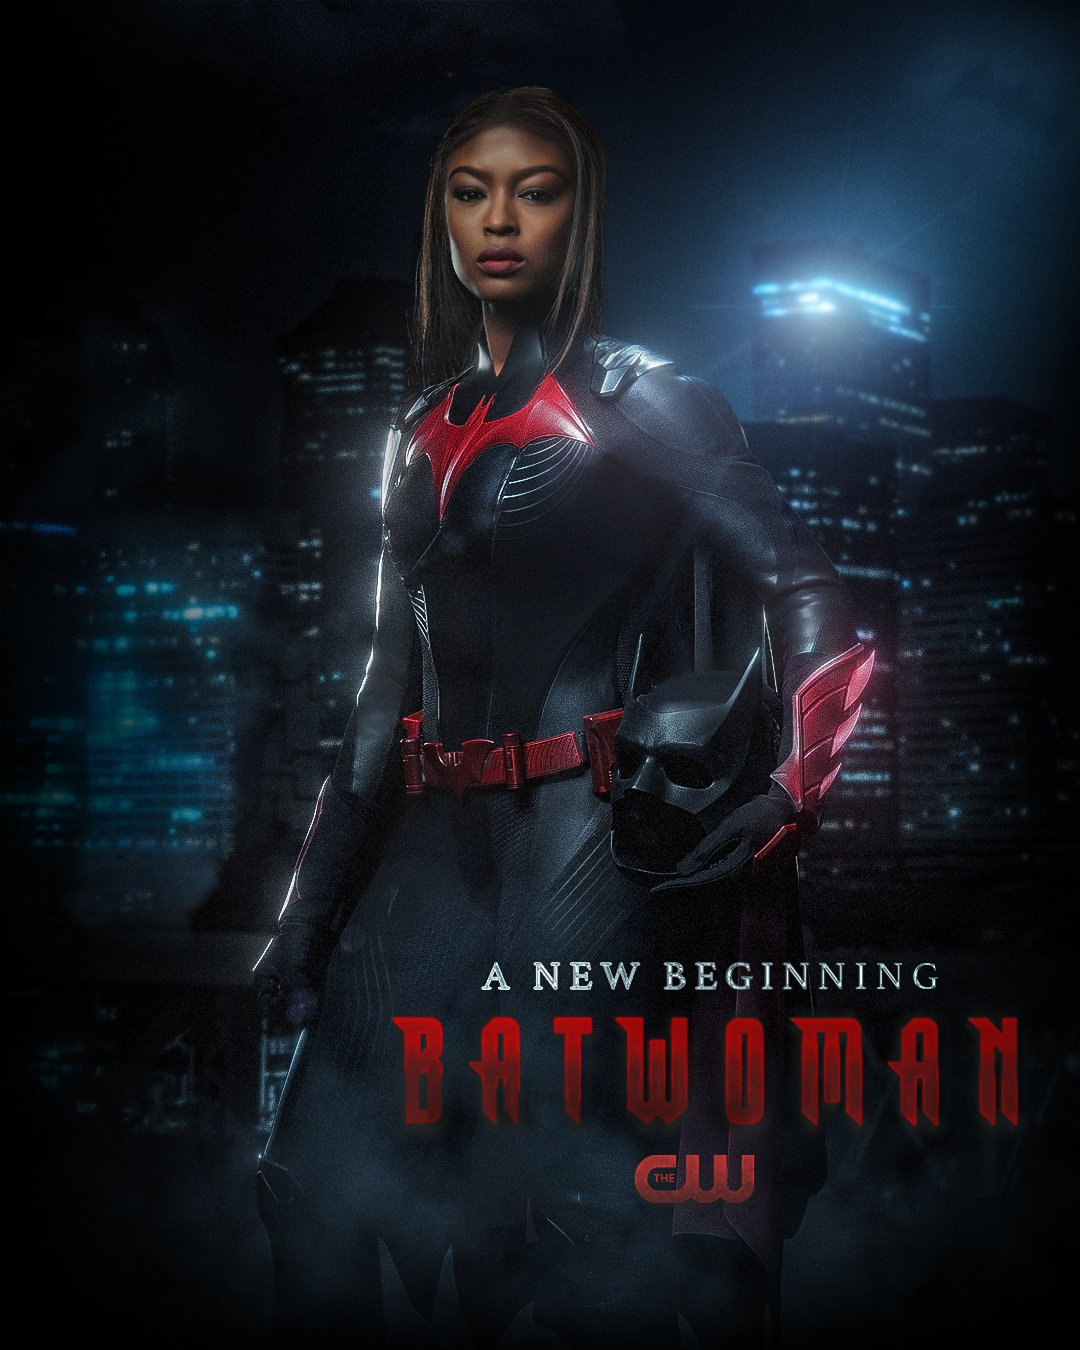 https://maskripper.org/wp-content/uploads/2021/01/Batwoman_promo_jan5.jpg